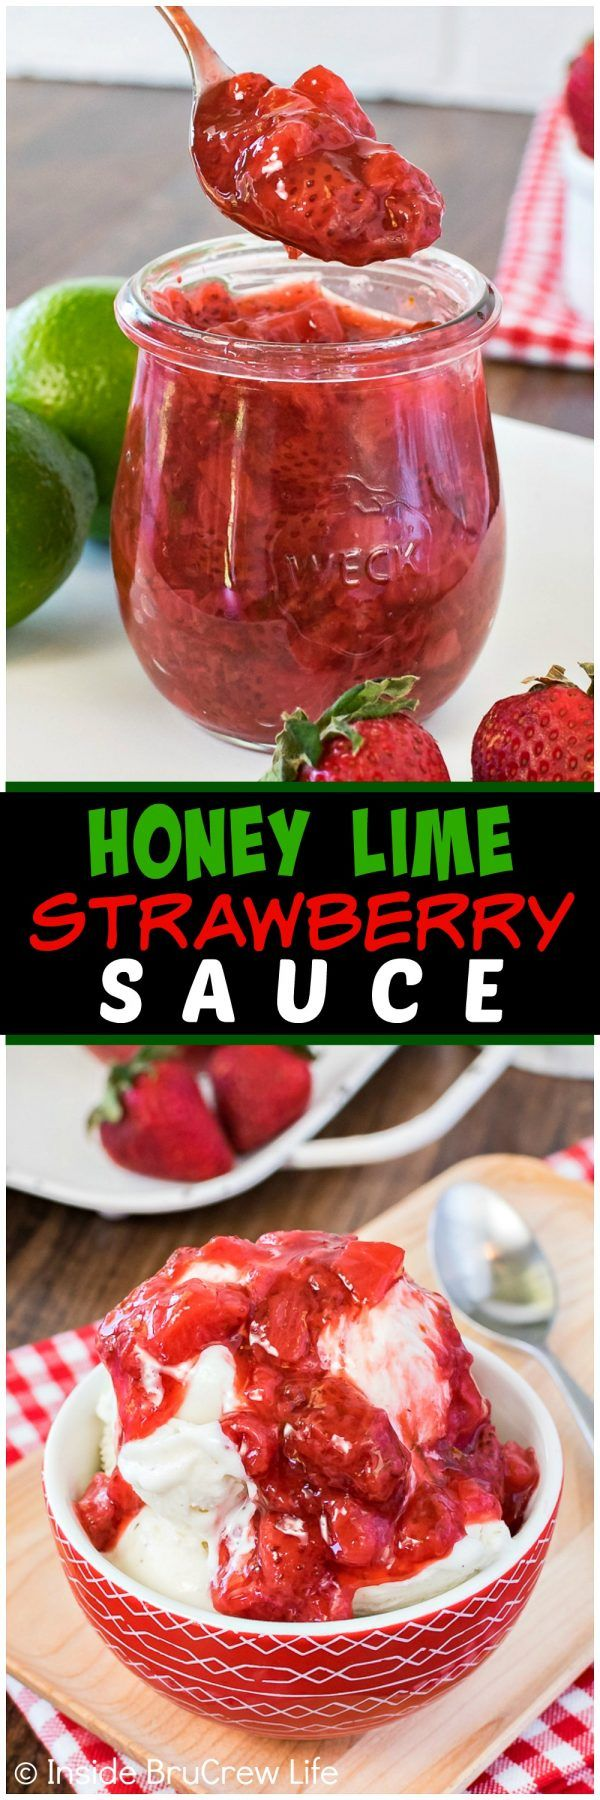 Honey Lime Strawberry Sauce - this easy fruit topping is made with a few ingredients. It's a great recipe to add to the top of cakes, ice cream, or cheesecake.